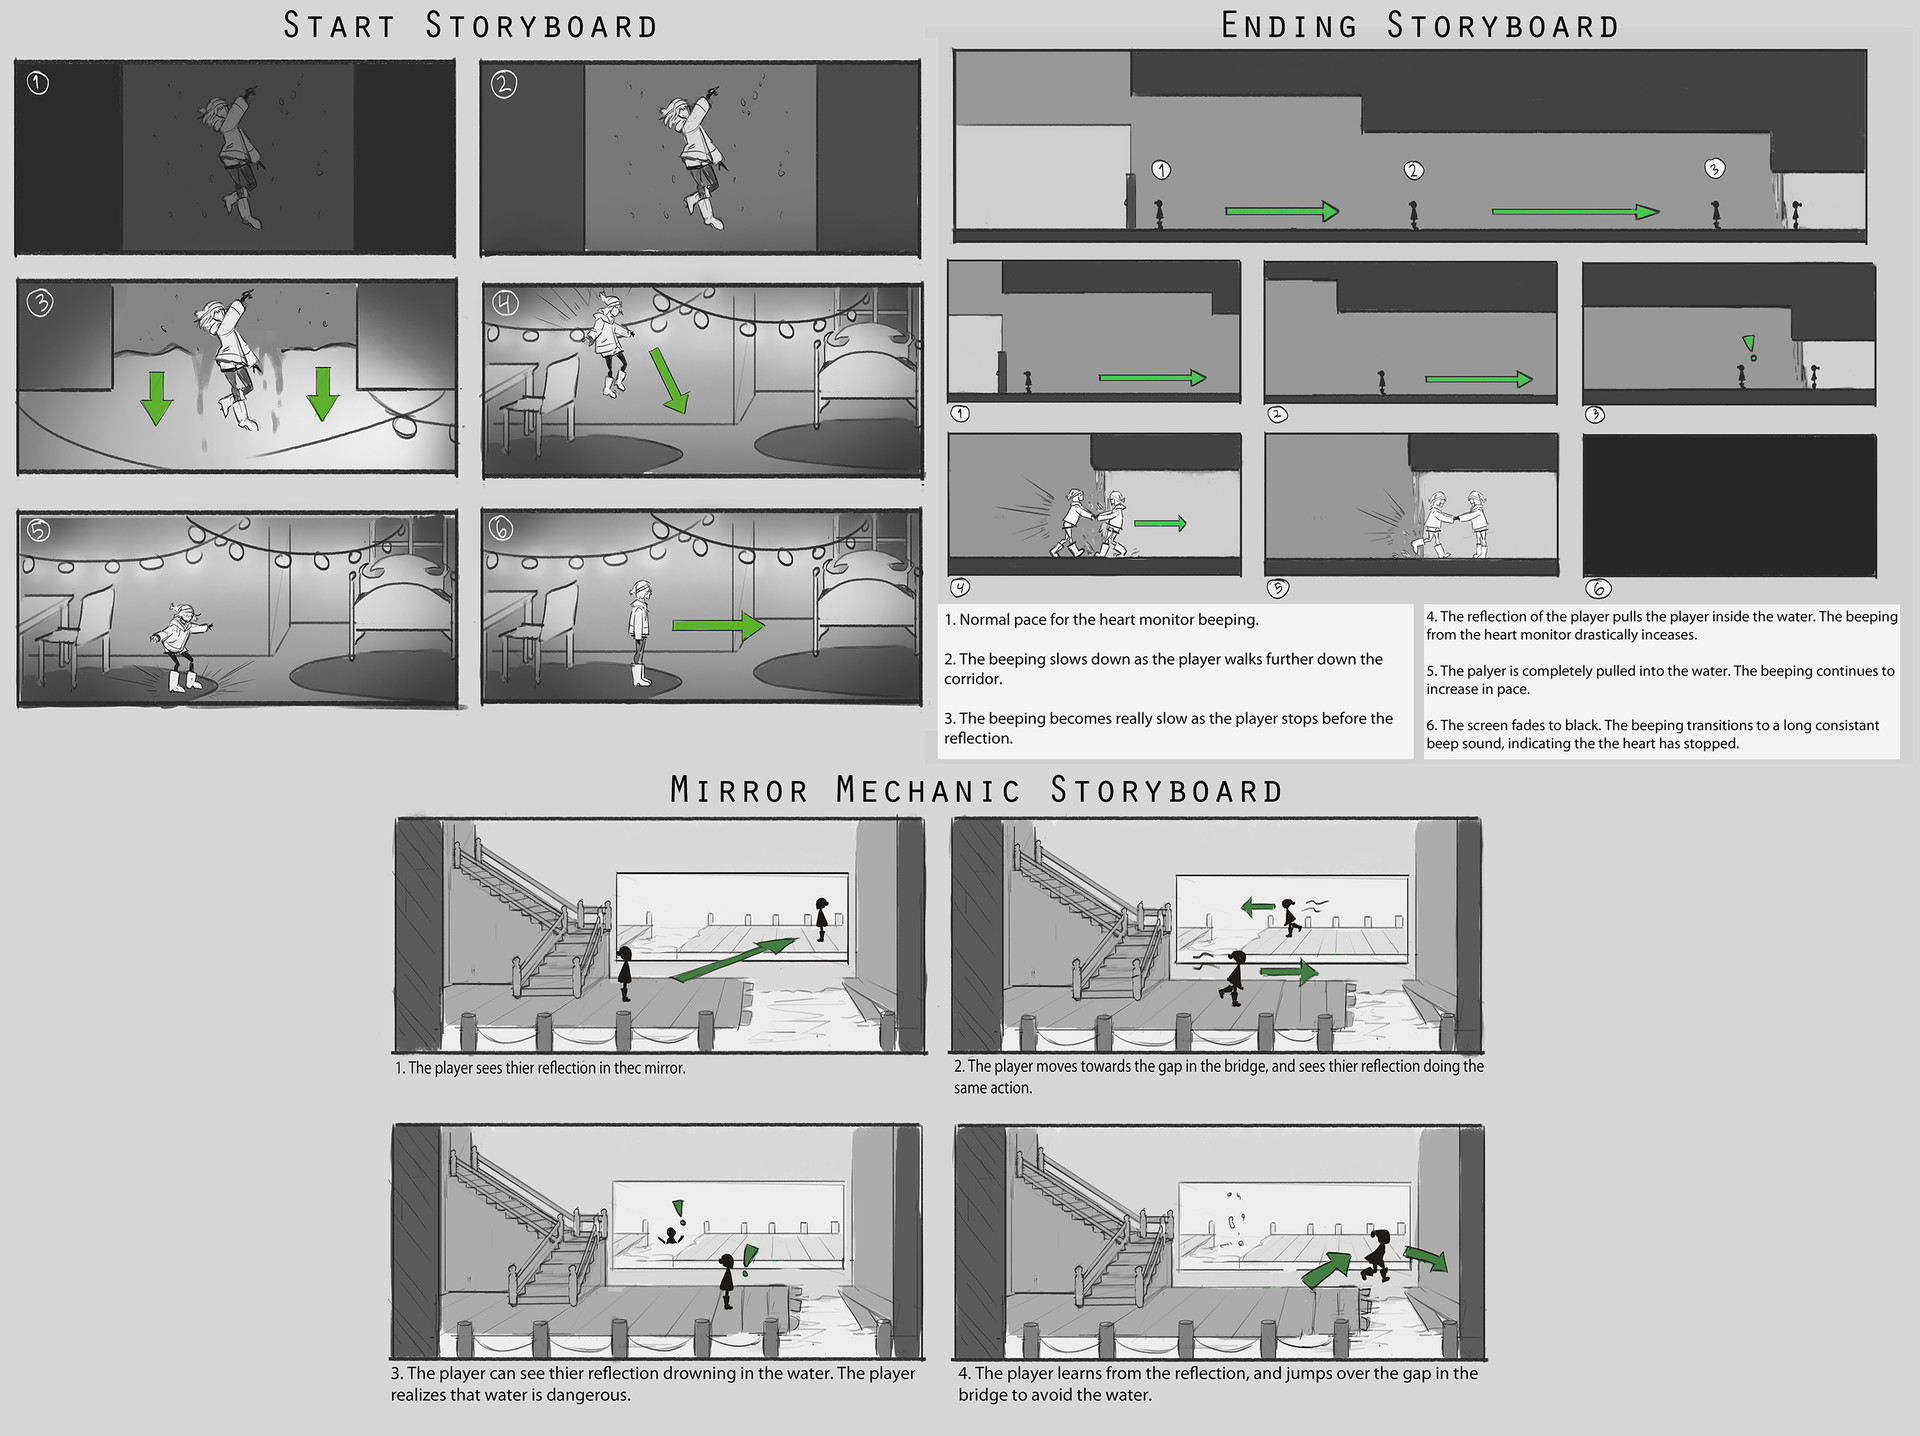 """Storyboards for the game start (later scrapped because of time), game ending and the main """"mirror mechanic"""" throughout the game."""